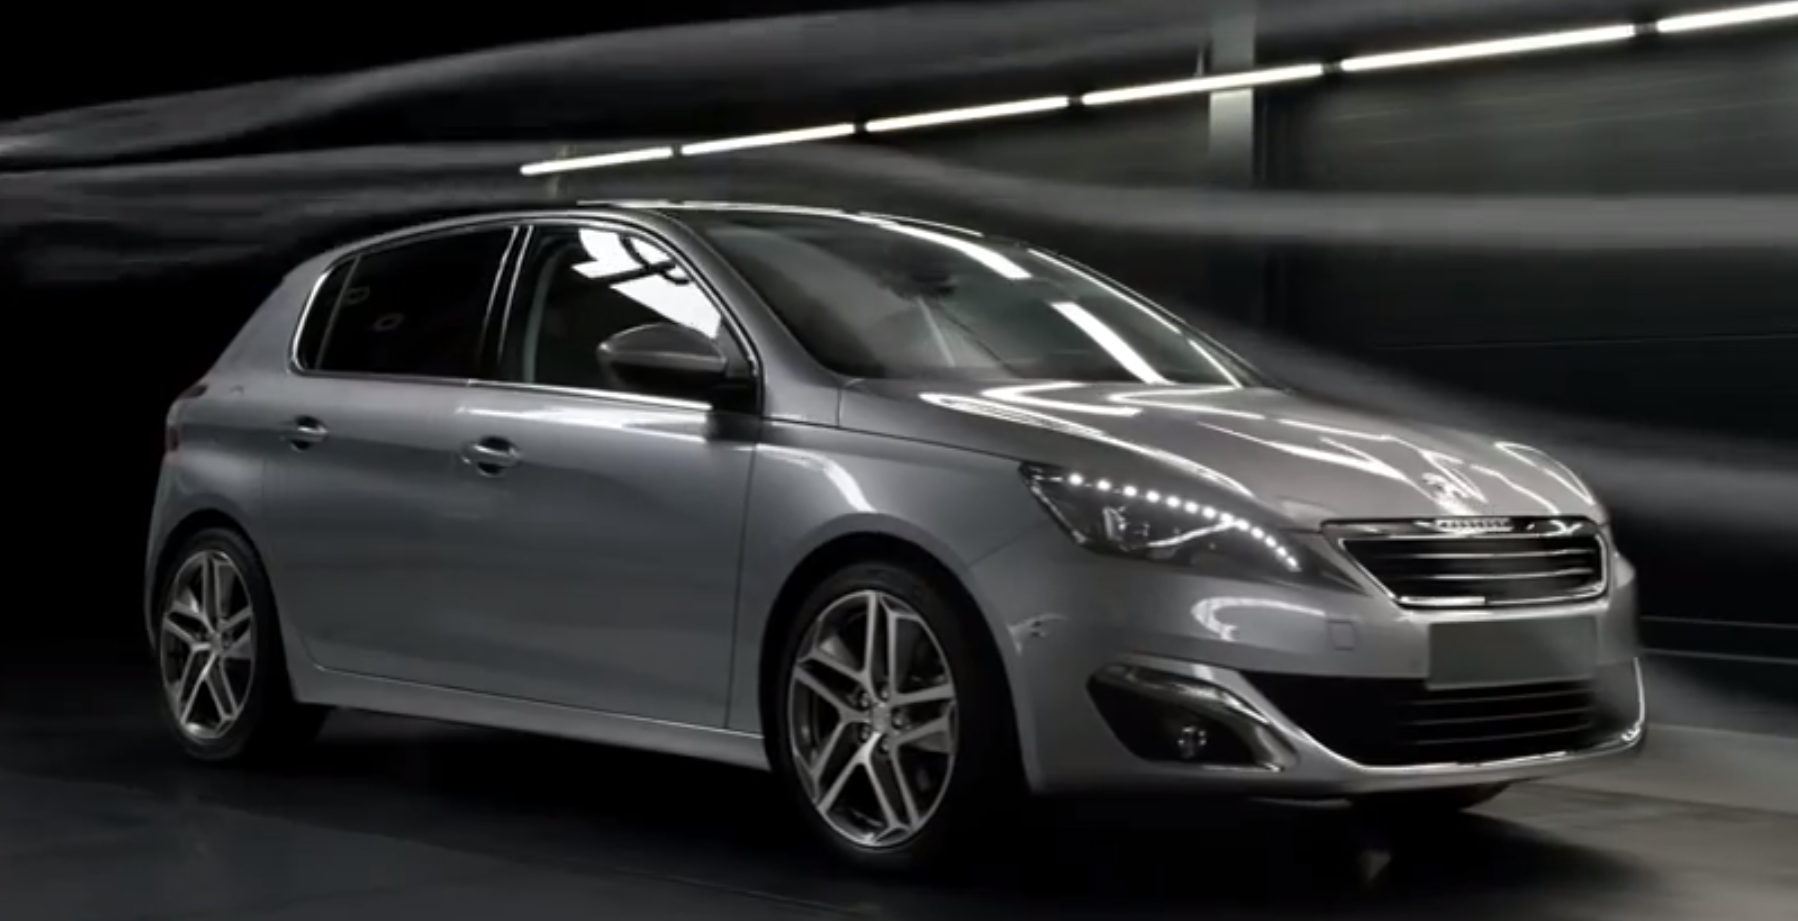 new peugeot 308 commercial feel the difference autoevolution. Black Bedroom Furniture Sets. Home Design Ideas